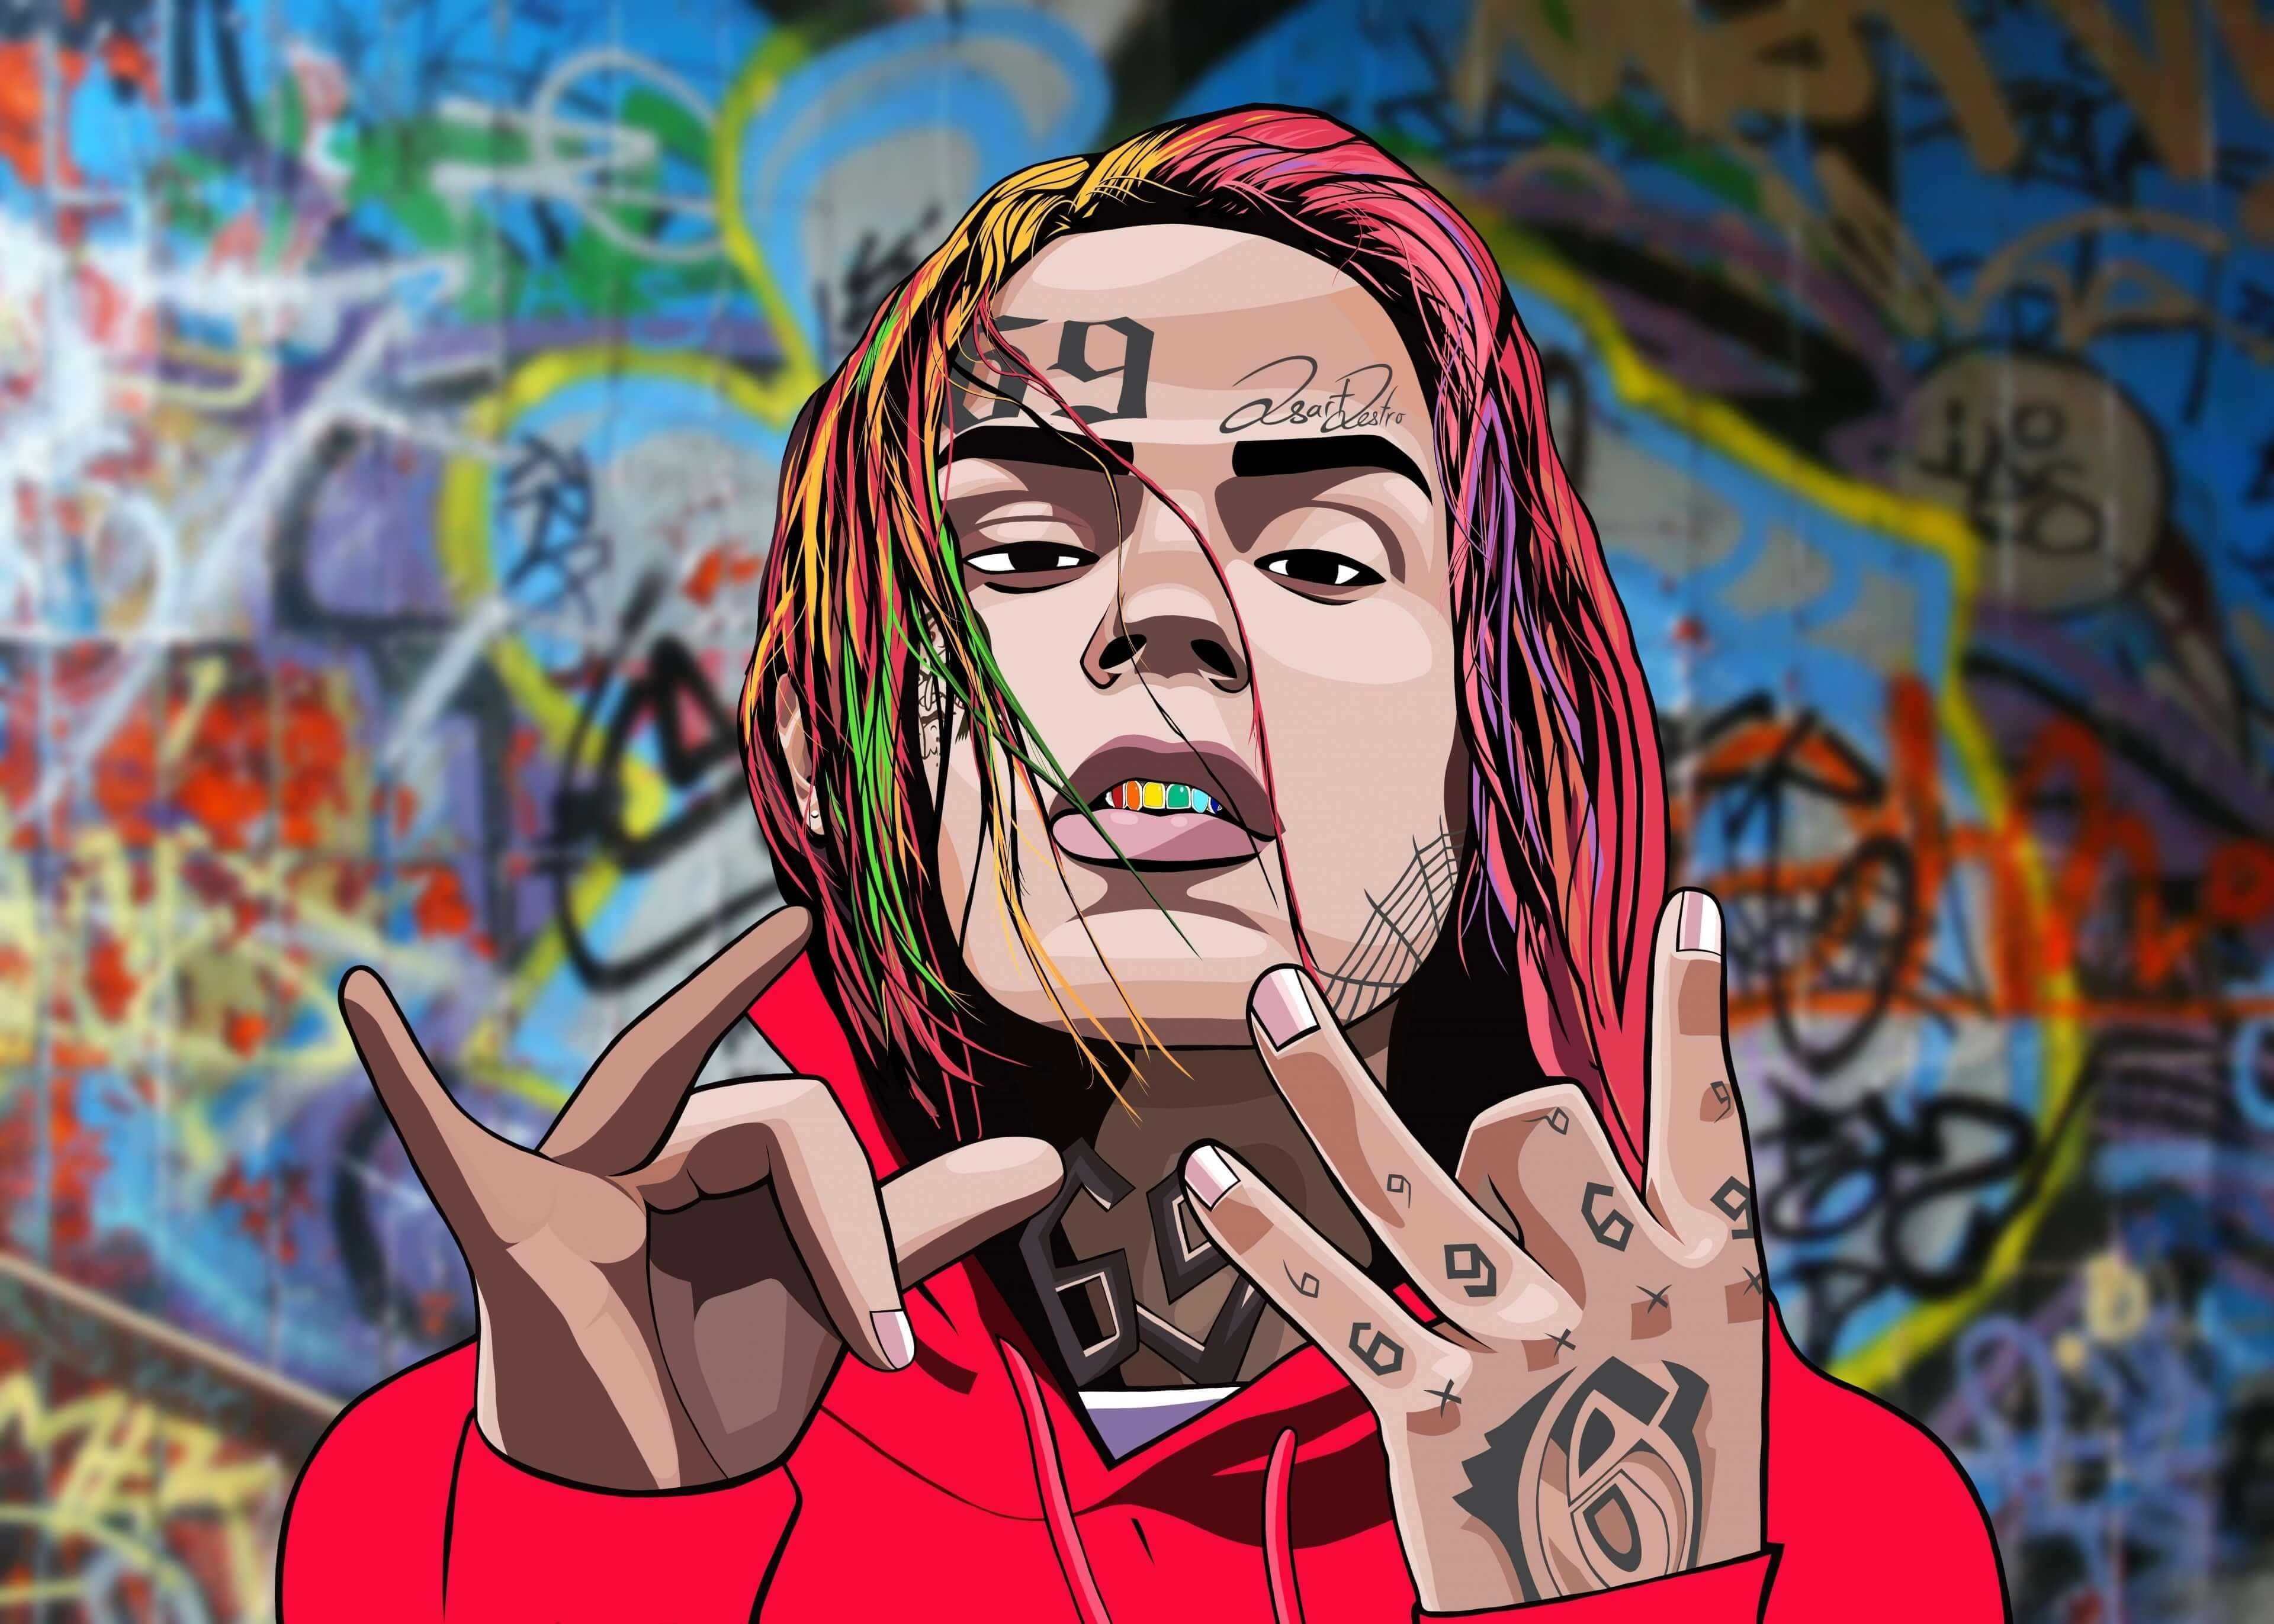 6ix9ine HD Wallpaper